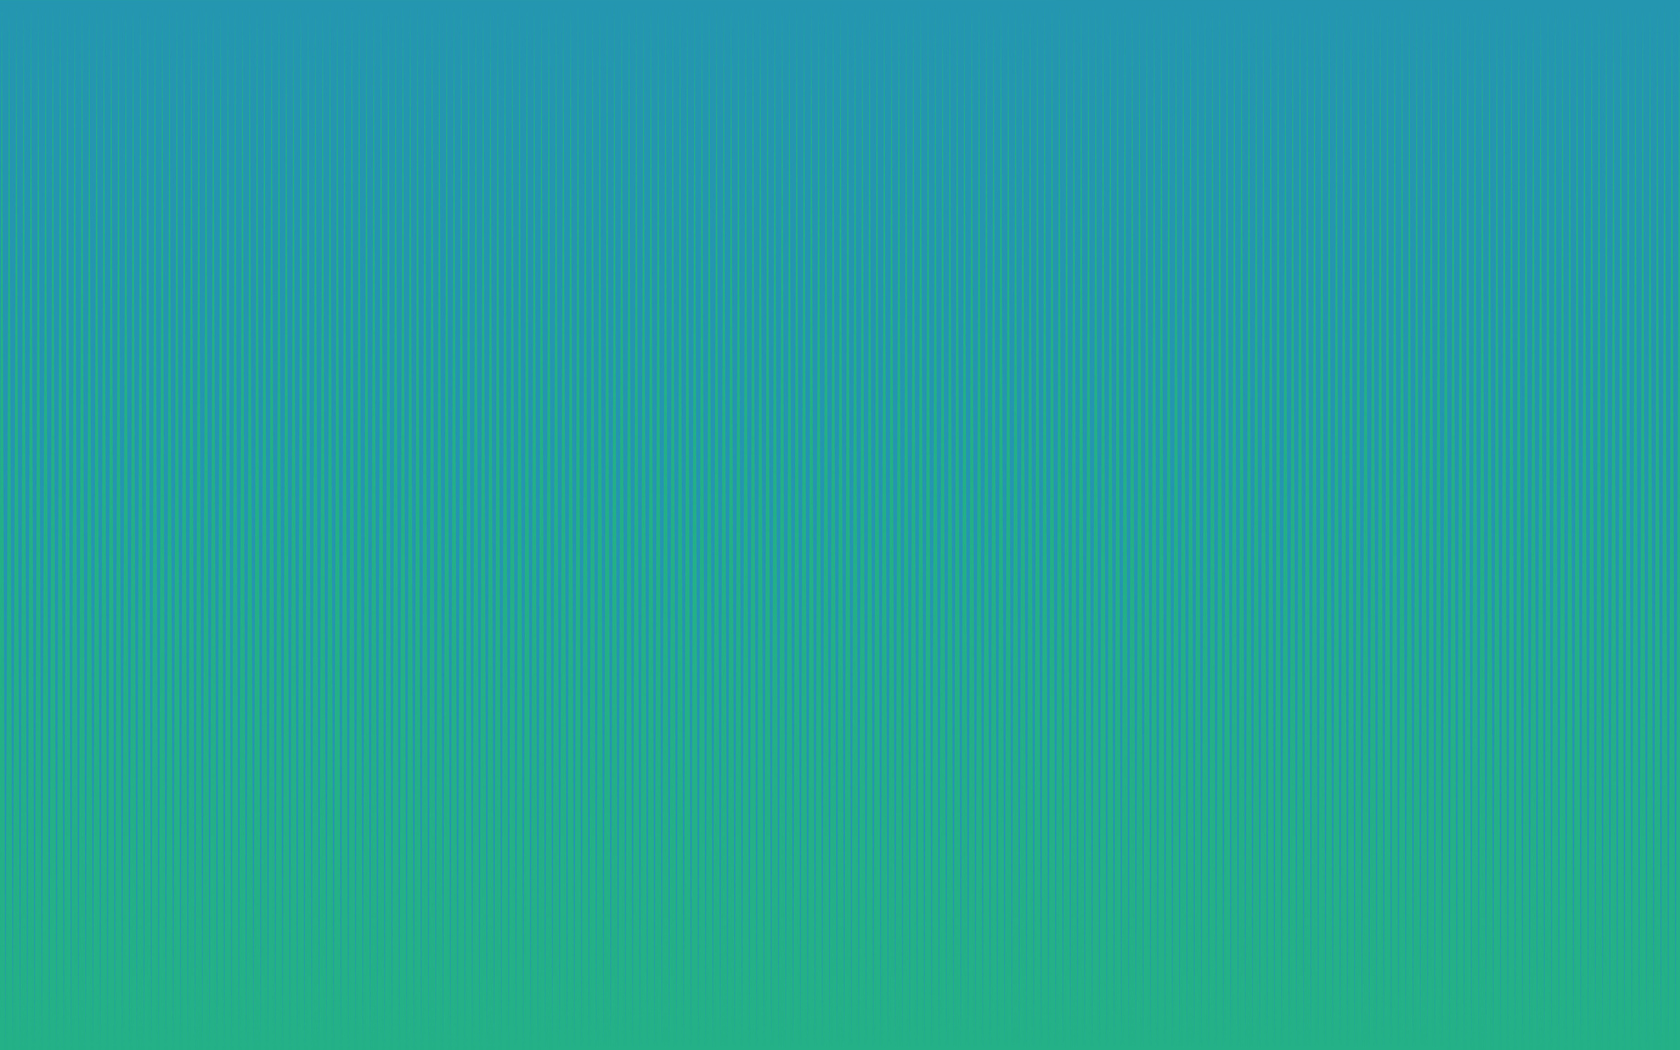 1680x1050 Blue Green Gradient Minimal 4k 1680x1050